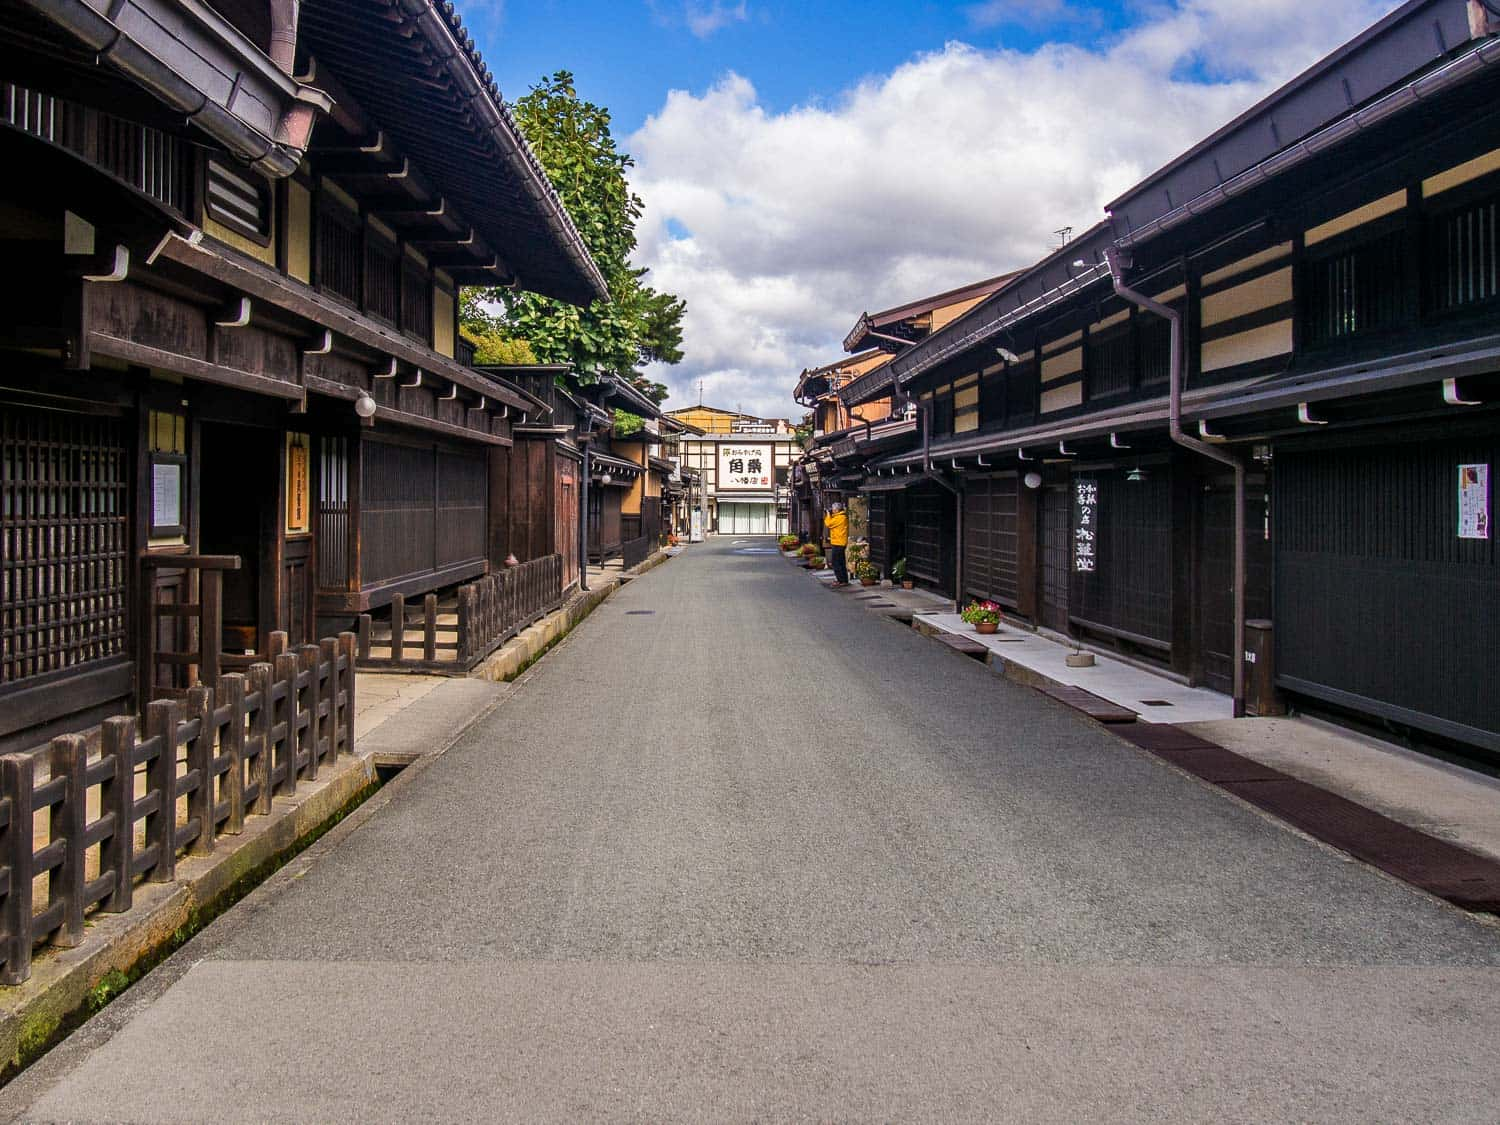 595de0c9aab Takayama, one of the best stops on our Japan 2 week itinerary